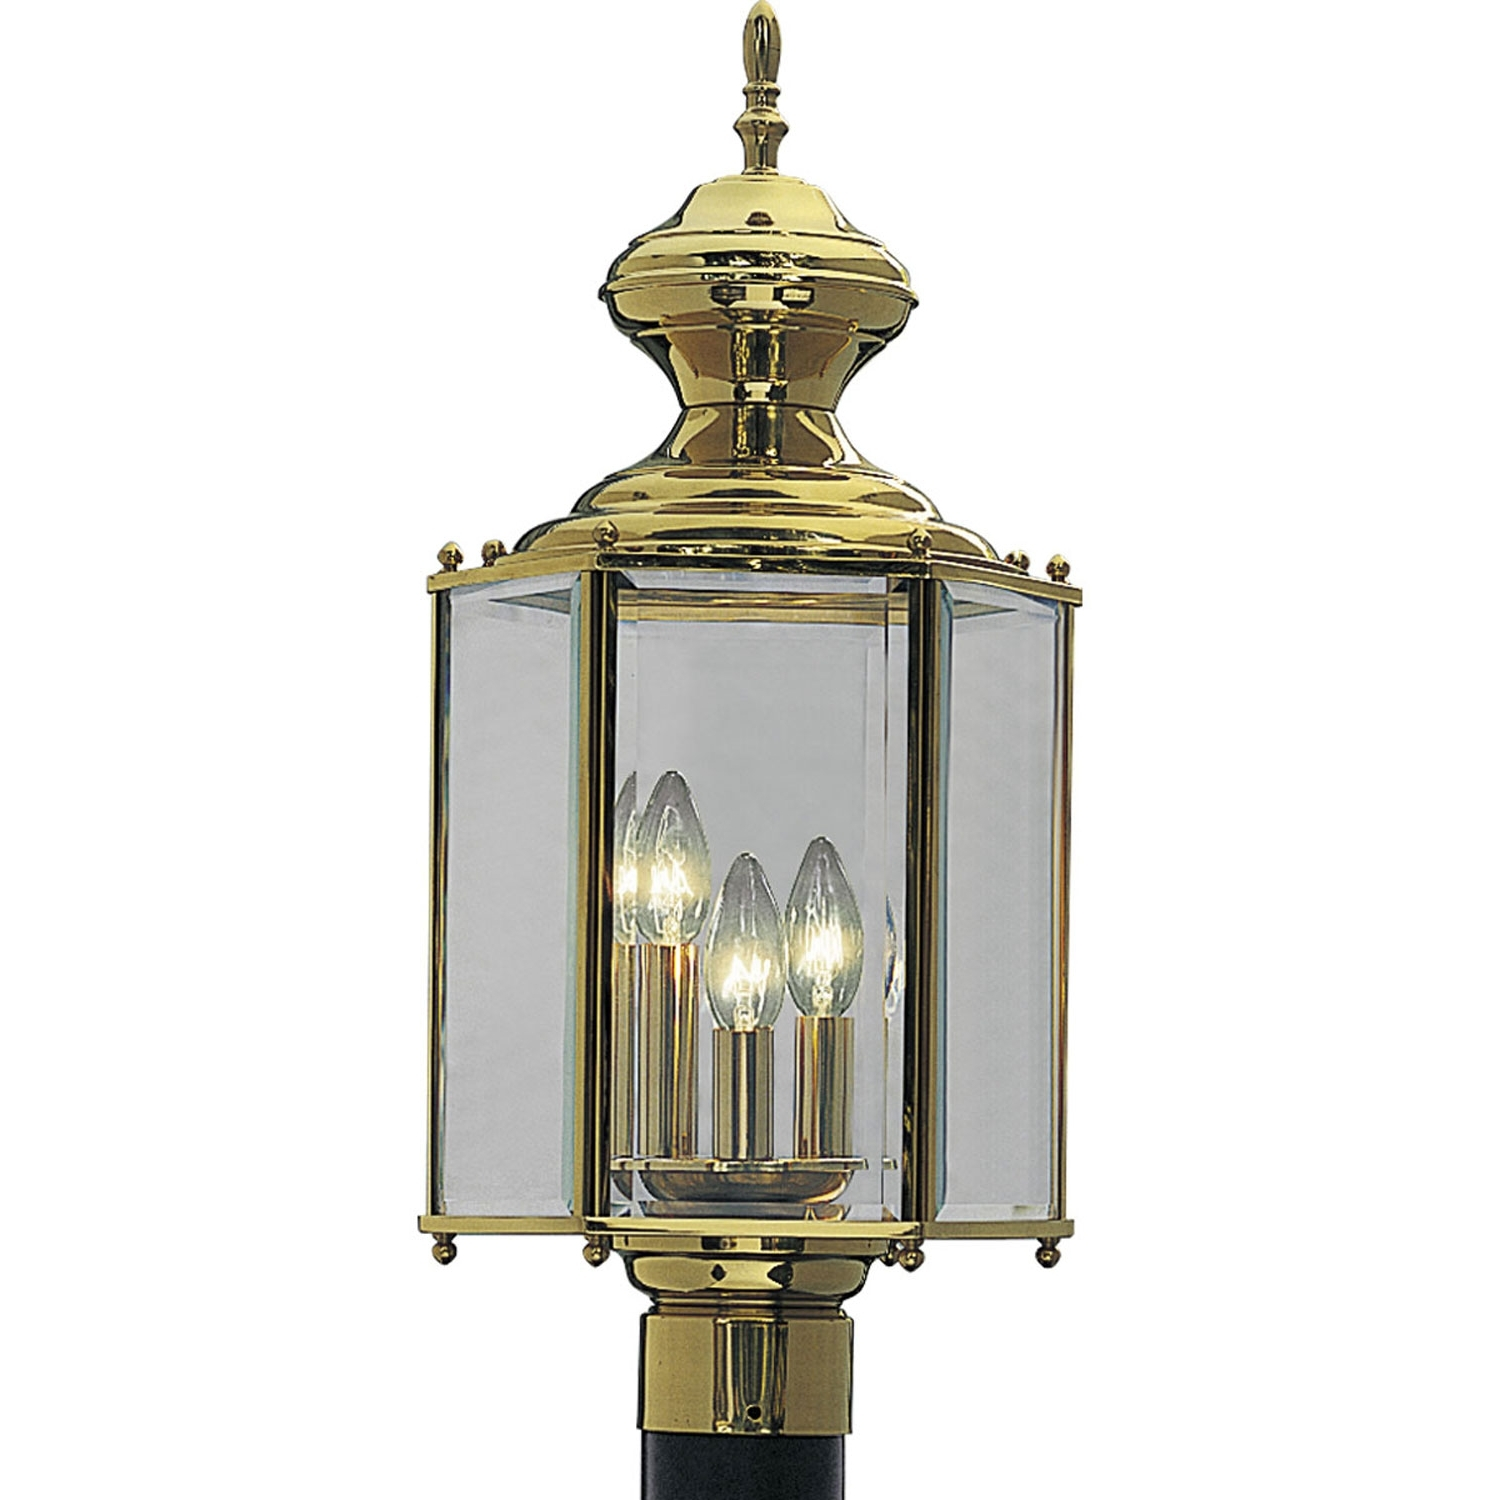 Brass Outdoor Lanterns With Regard To Best And Newest Progress Lighting P5432 10: Brassguard Lanterns Polished Brass Three (View 7 of 20)